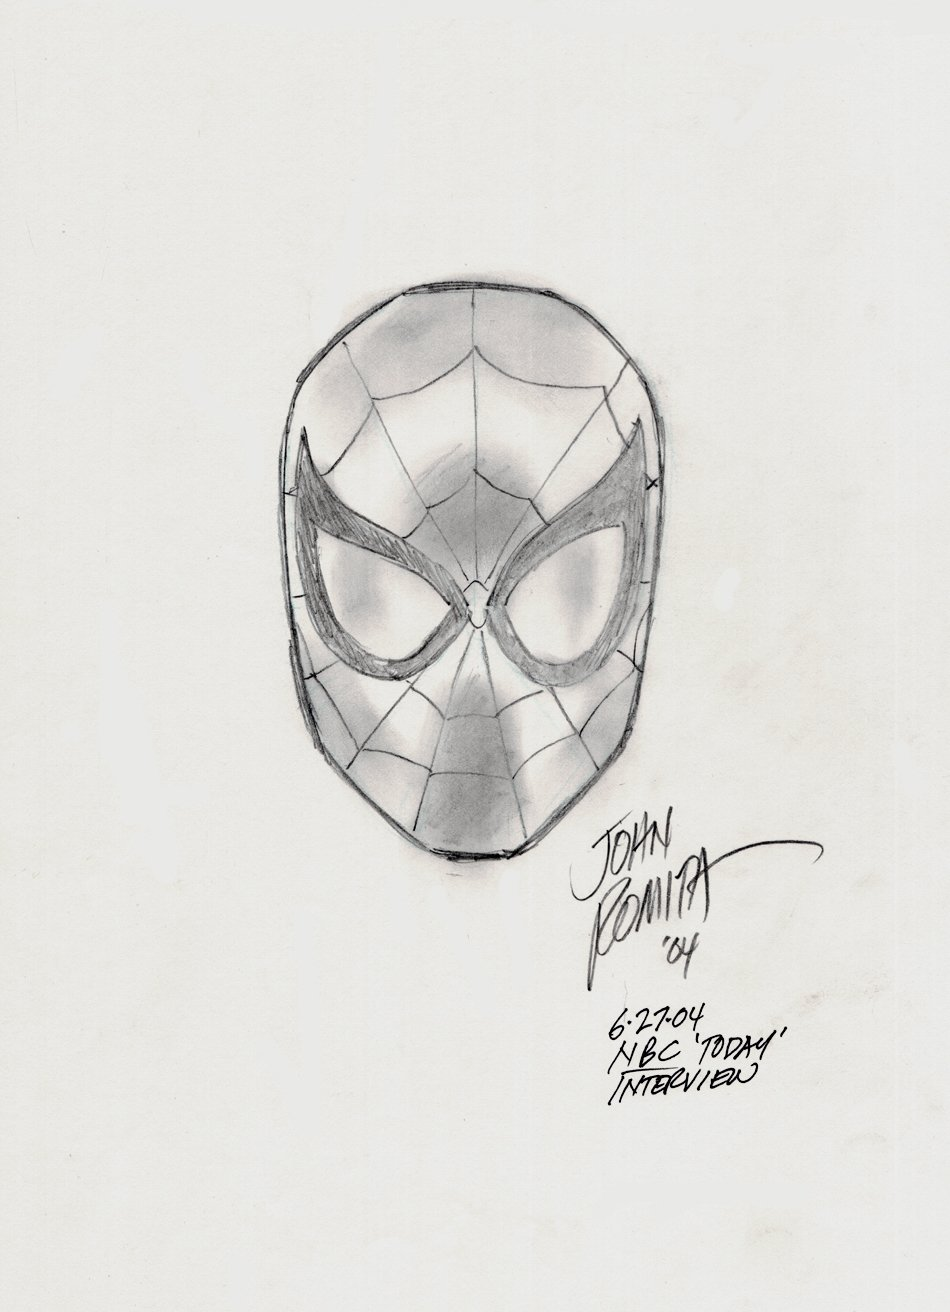 Spider-Man Drawing - NBC TODAY SHOW (SOLD LIVE ON 'DUELING DEALERS OF COMIC ART' EPISODE #18 PODCAST ON 5-19-2021 (RE-WATCH OUR FUNNY ART SELLING SHOW HERE